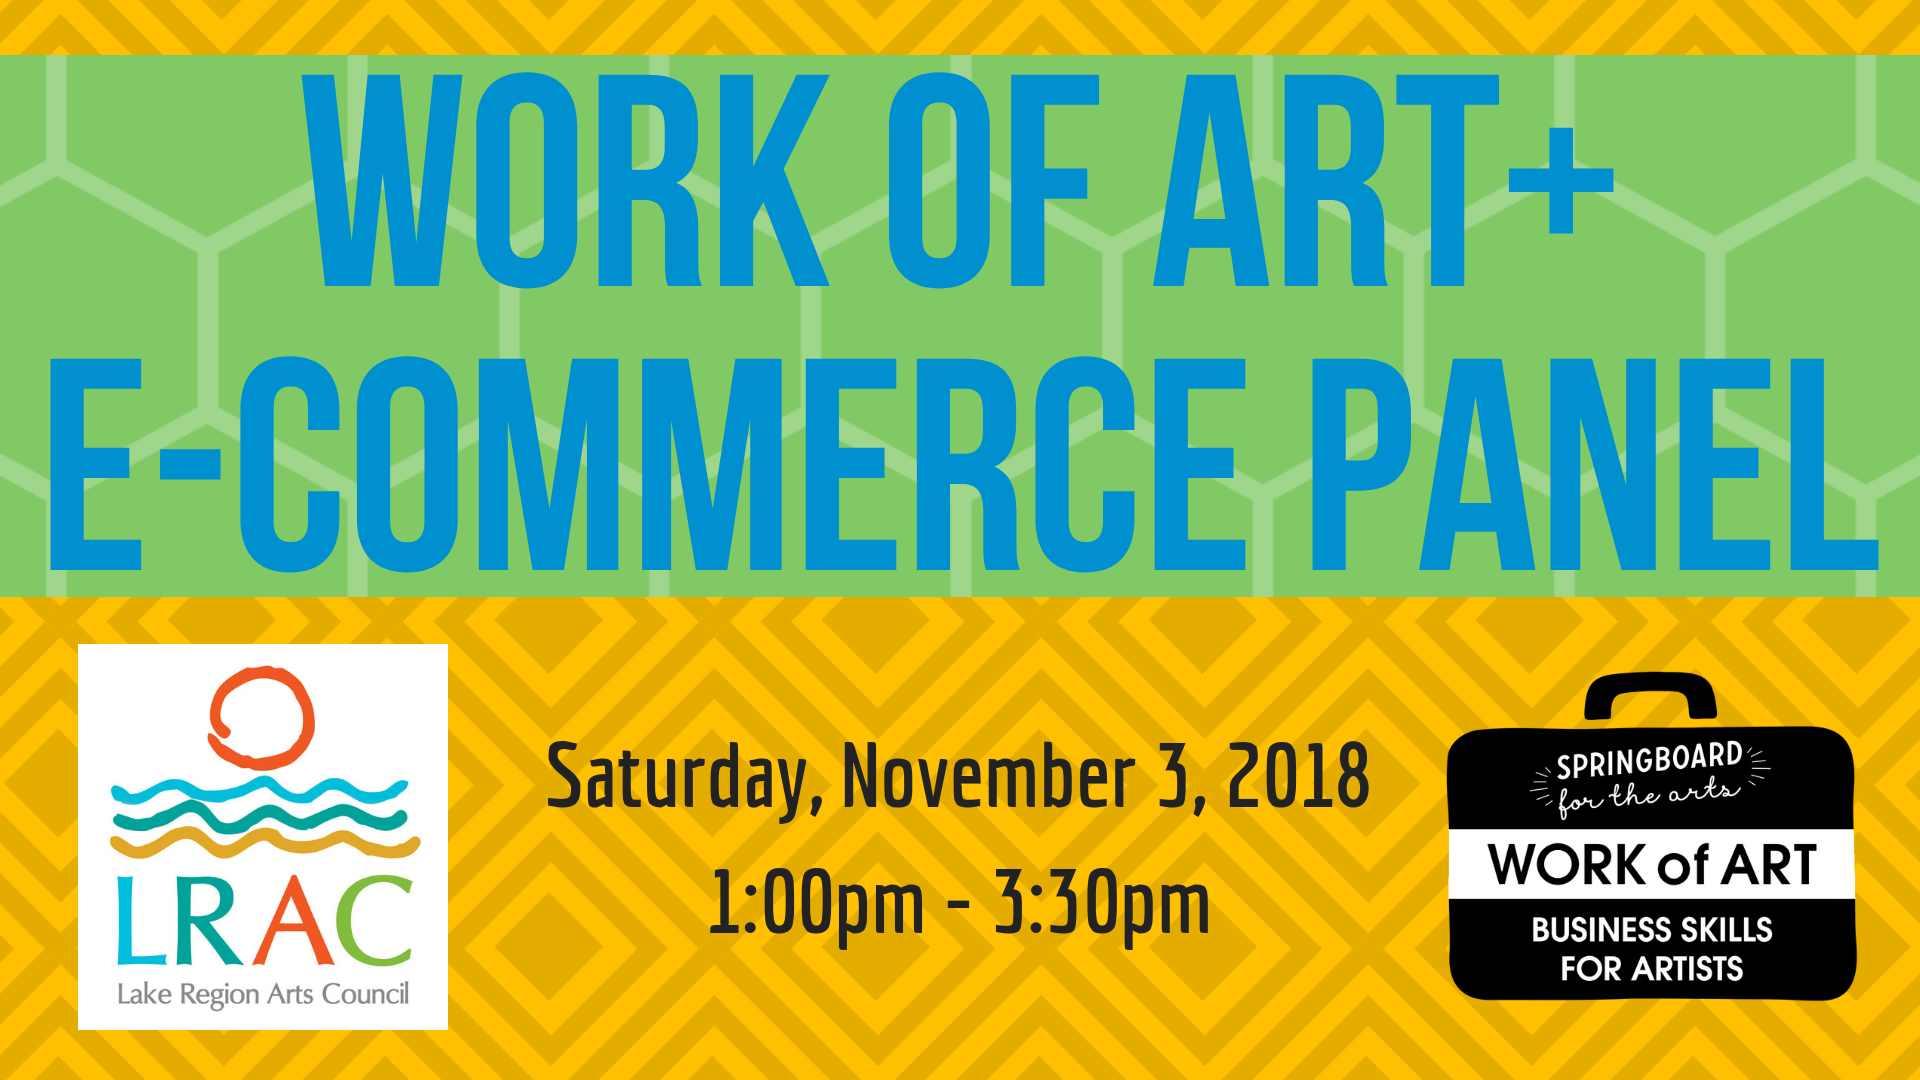 work_of_artecommerce_panelfb_event_cover.png